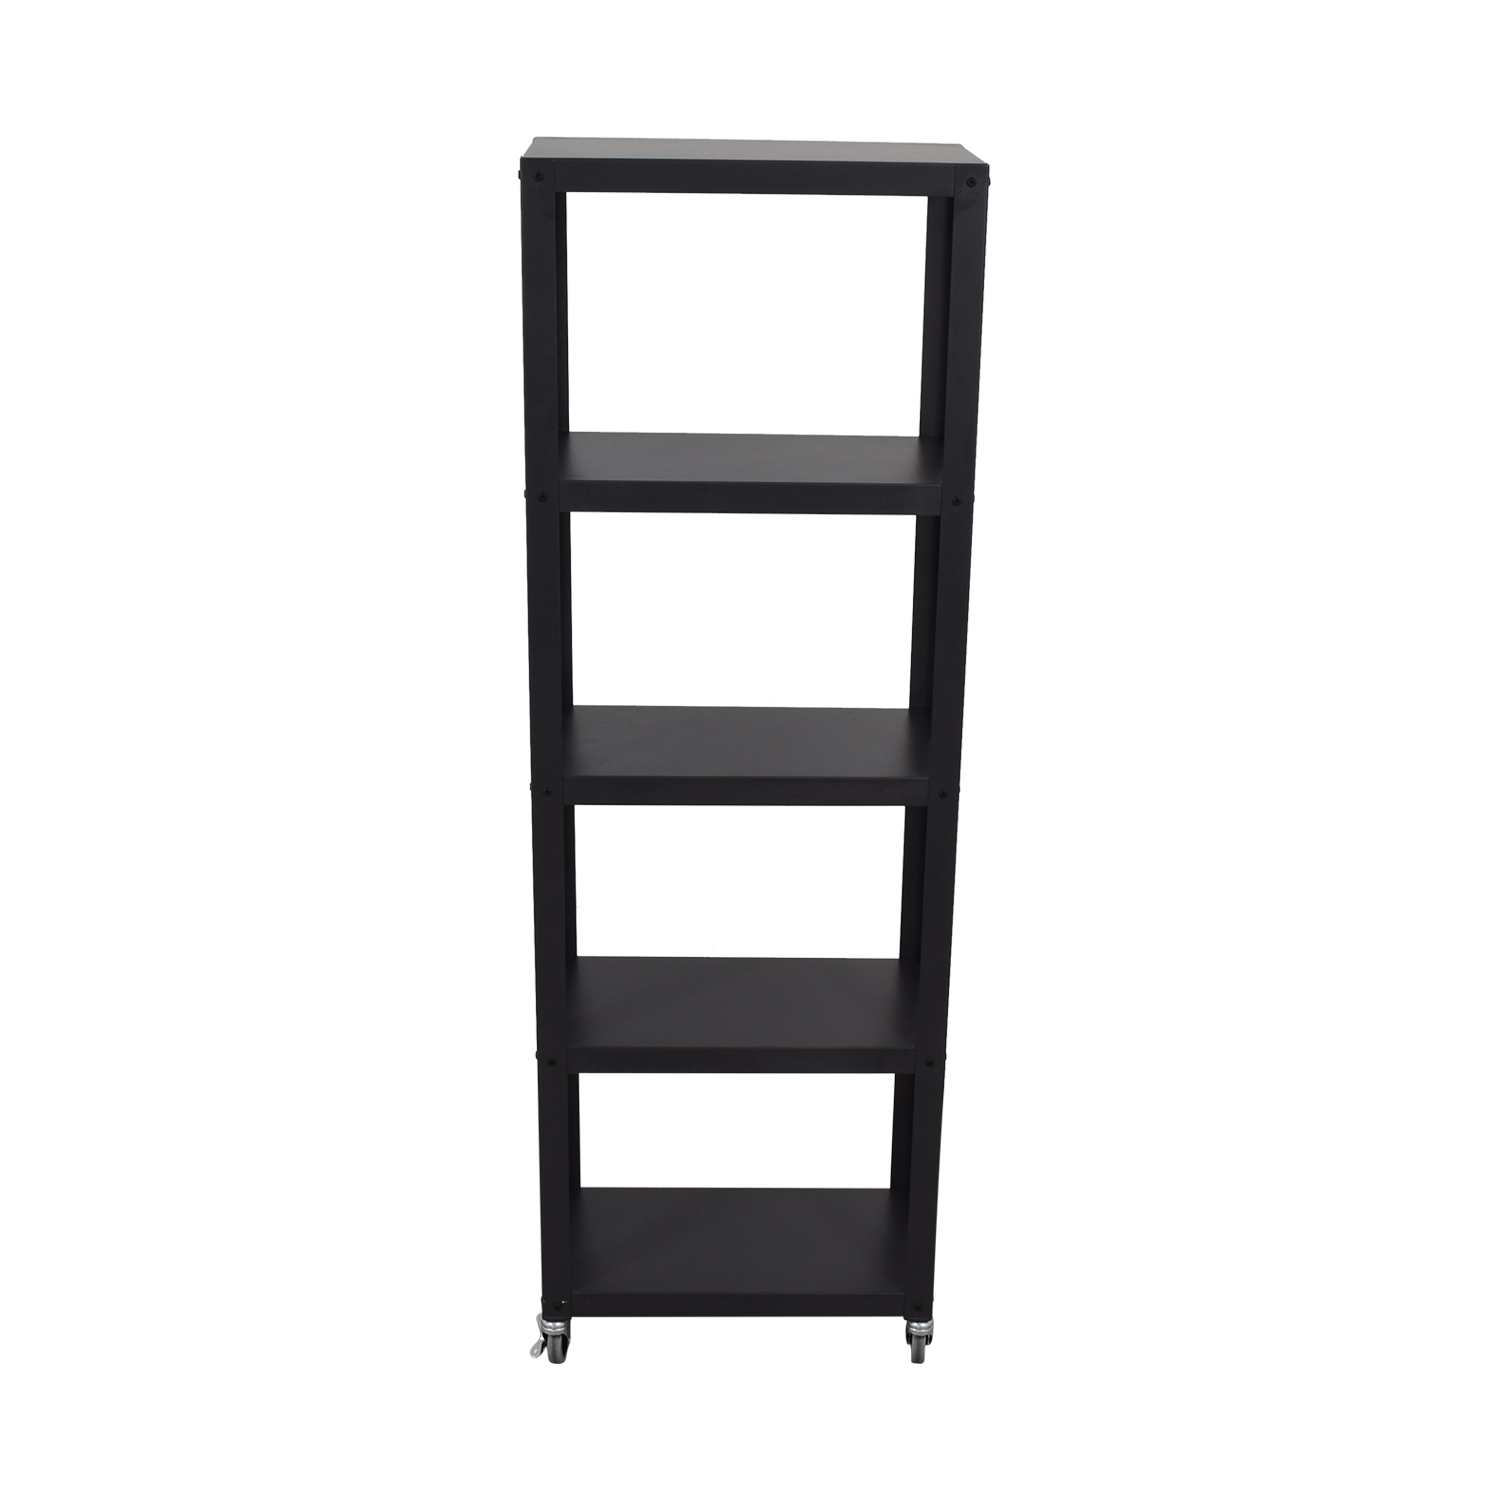 CB2 CB2 Go-Cart Black Five-Shelf Rolling Bookcase dimensions